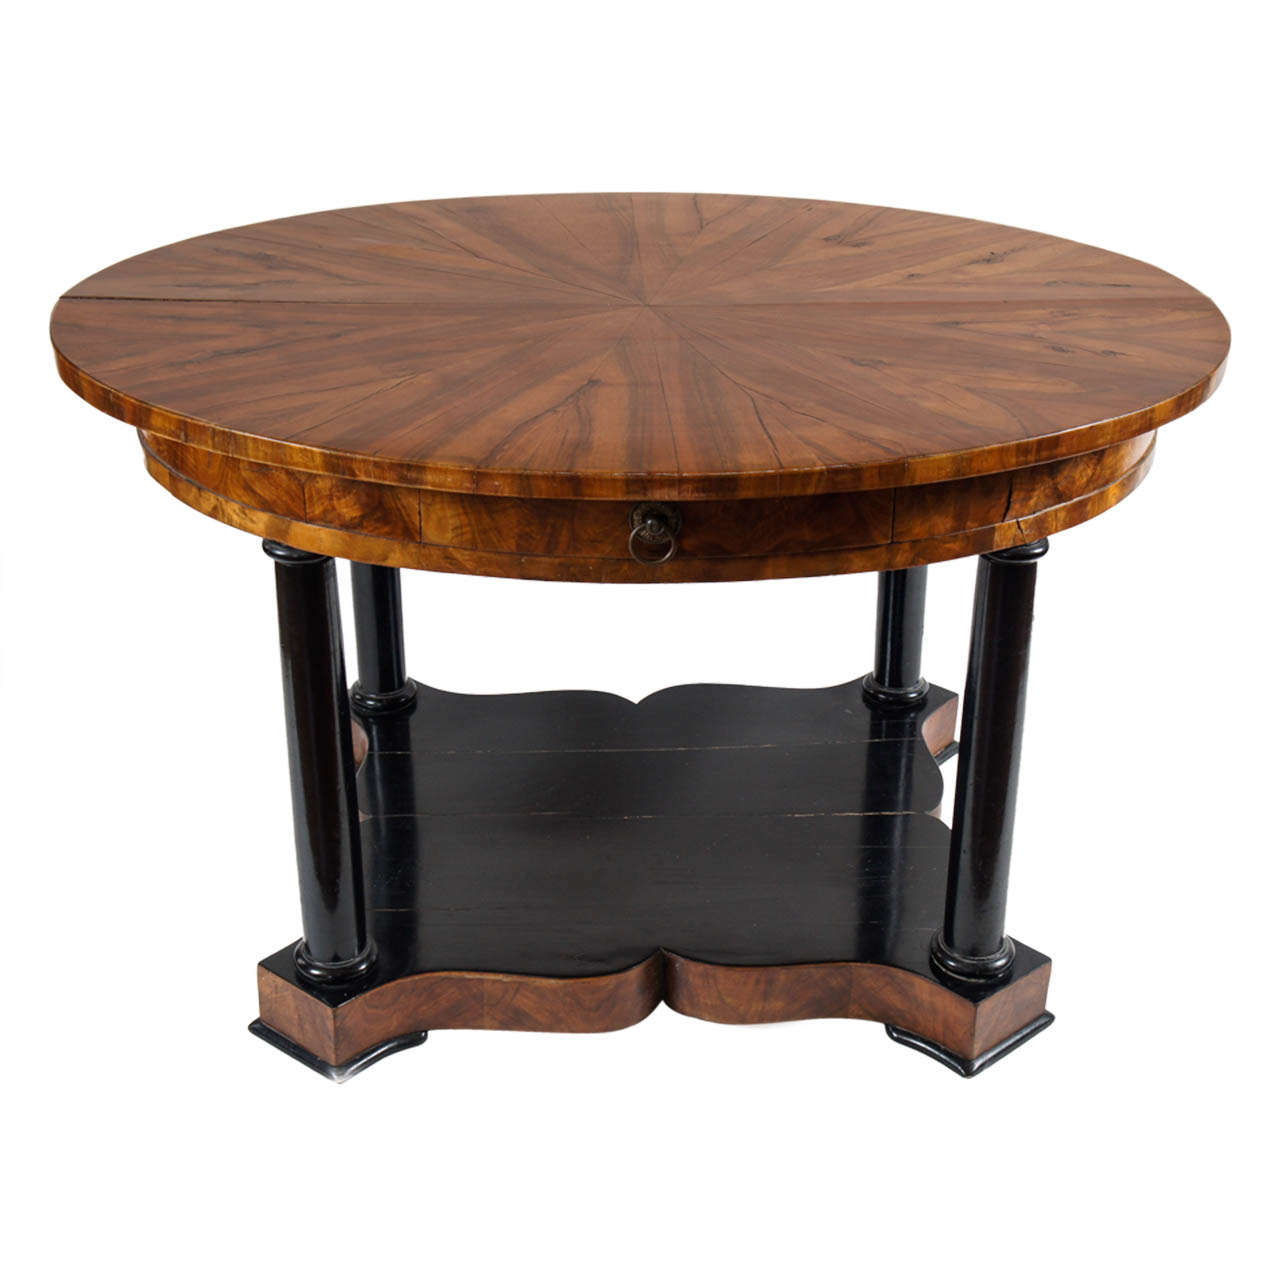 Biedermeier Centre Table, Austria, circa 1830